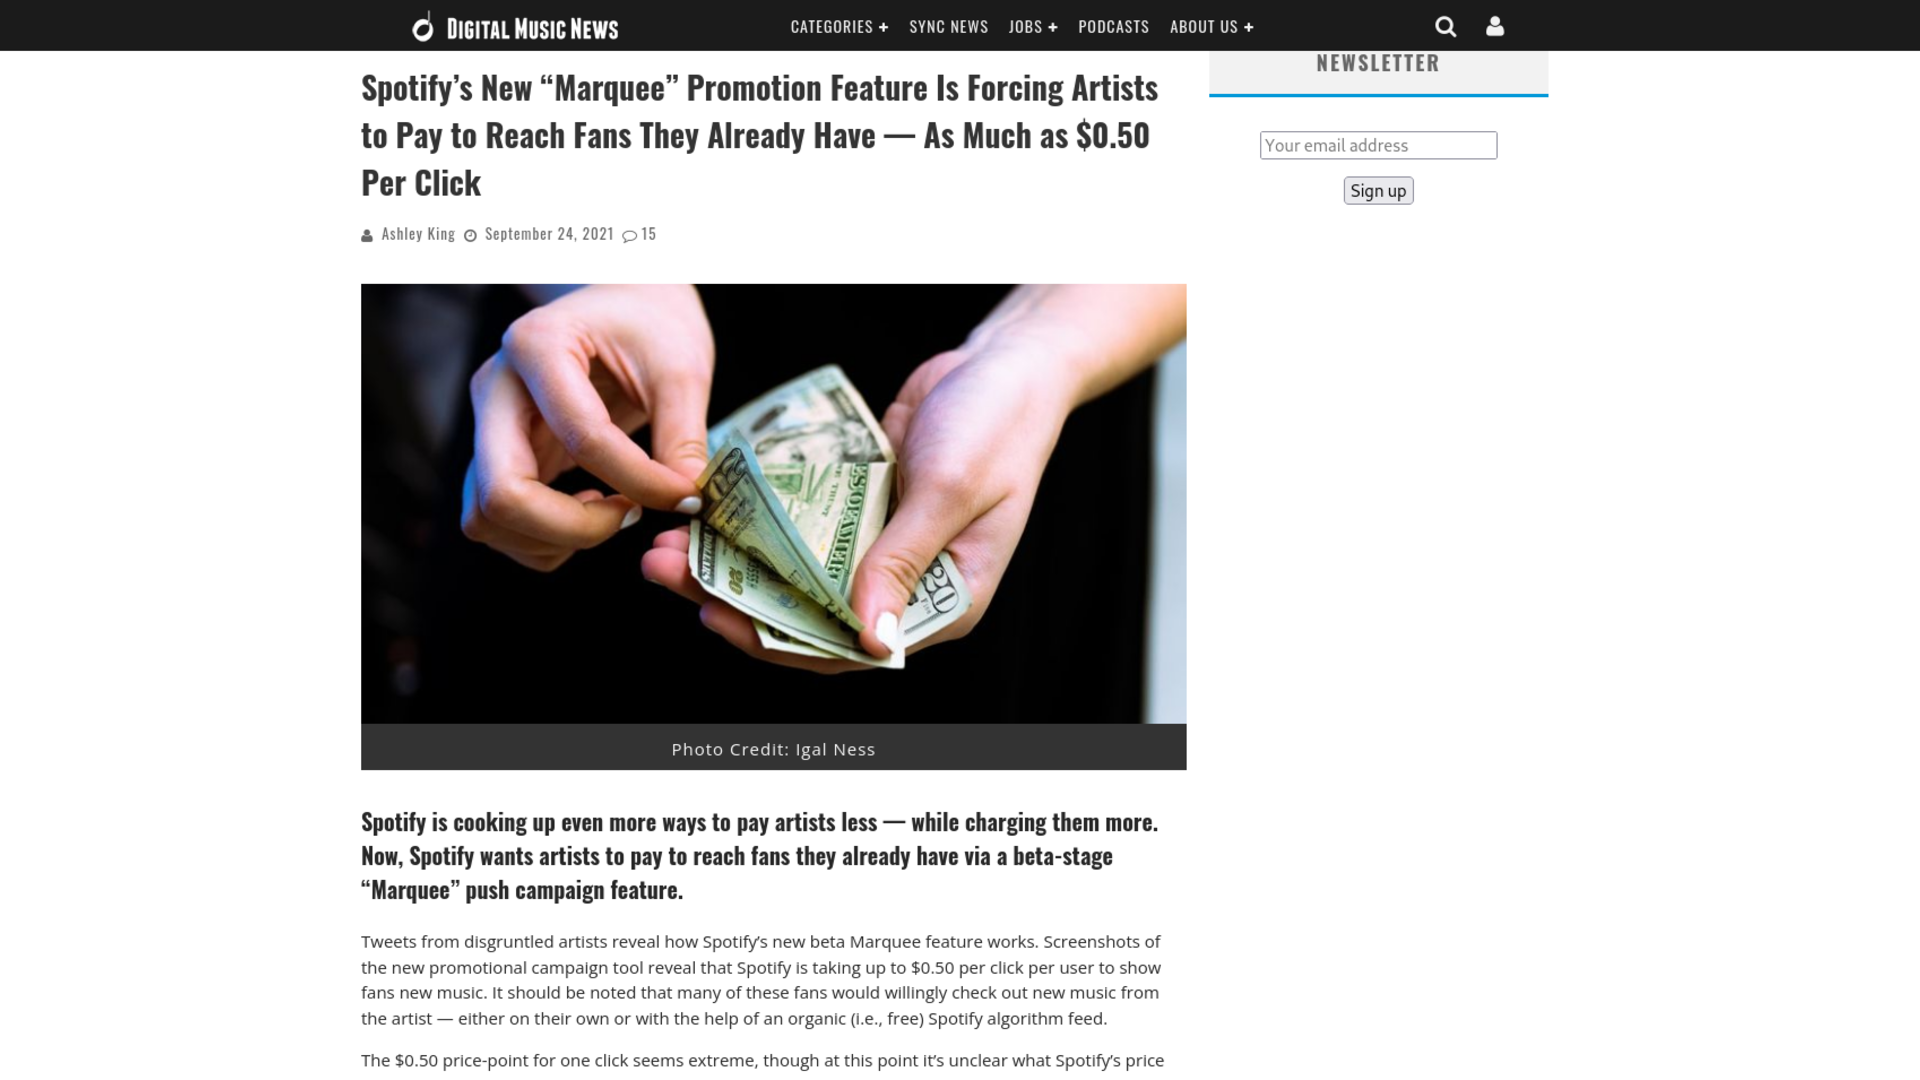 """Fairness Rocks News Spotify's New """"Marquee"""" Promotion Feature Is Forcing Artists to Pay to Reach Fans They Already Have — As Much as $0.50 Per Click"""